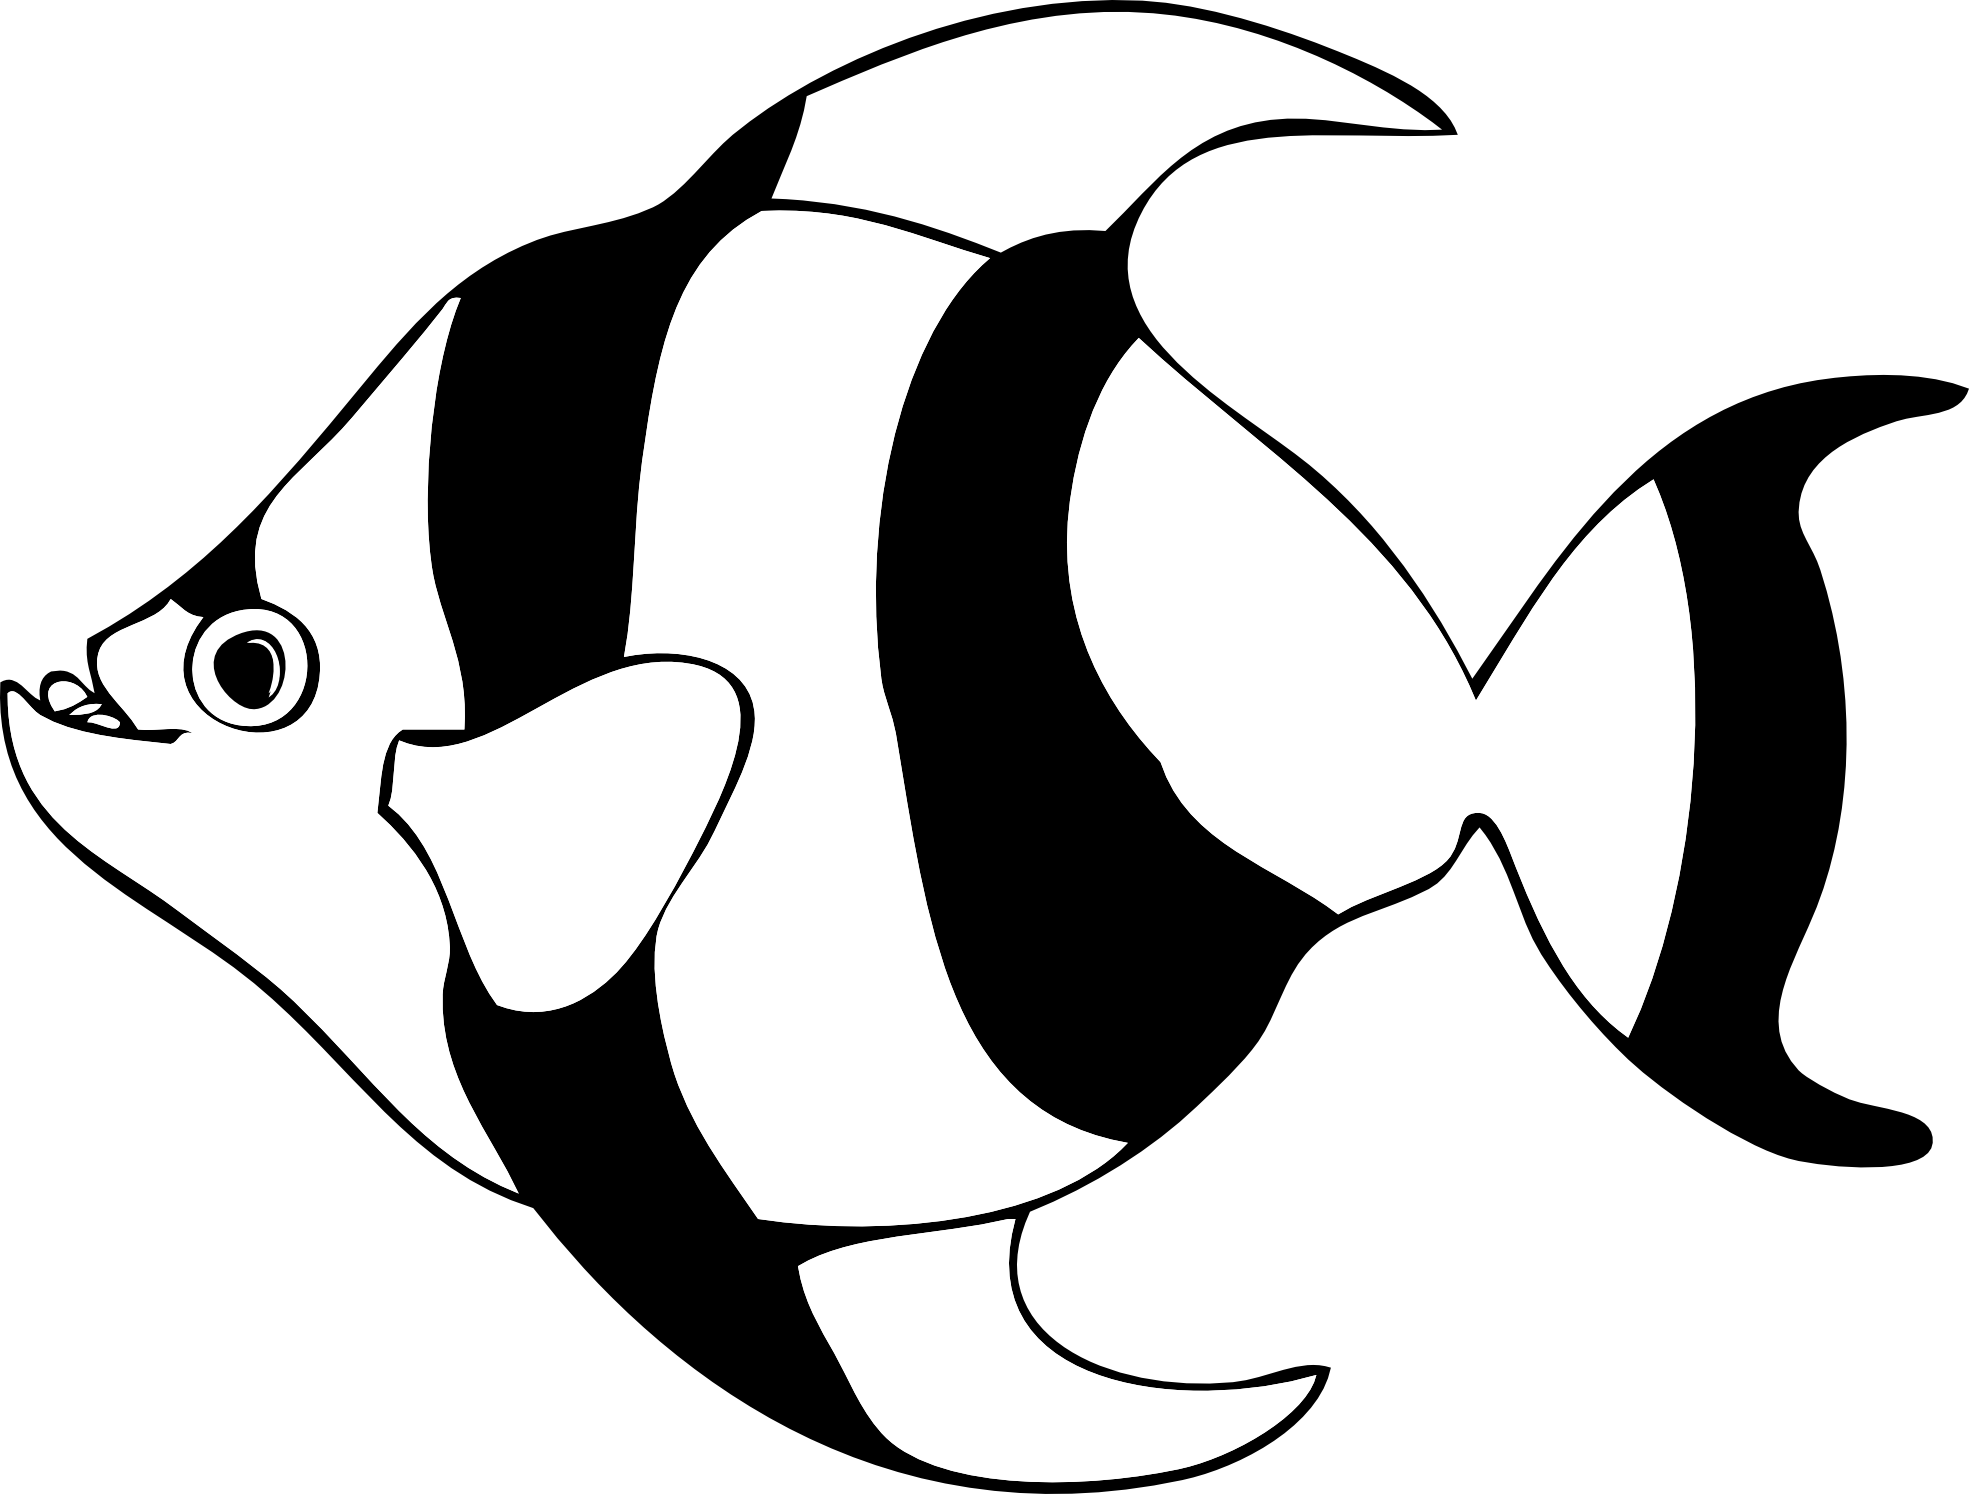 Tropical Fish Black And White Clipart | Clipart library - Free